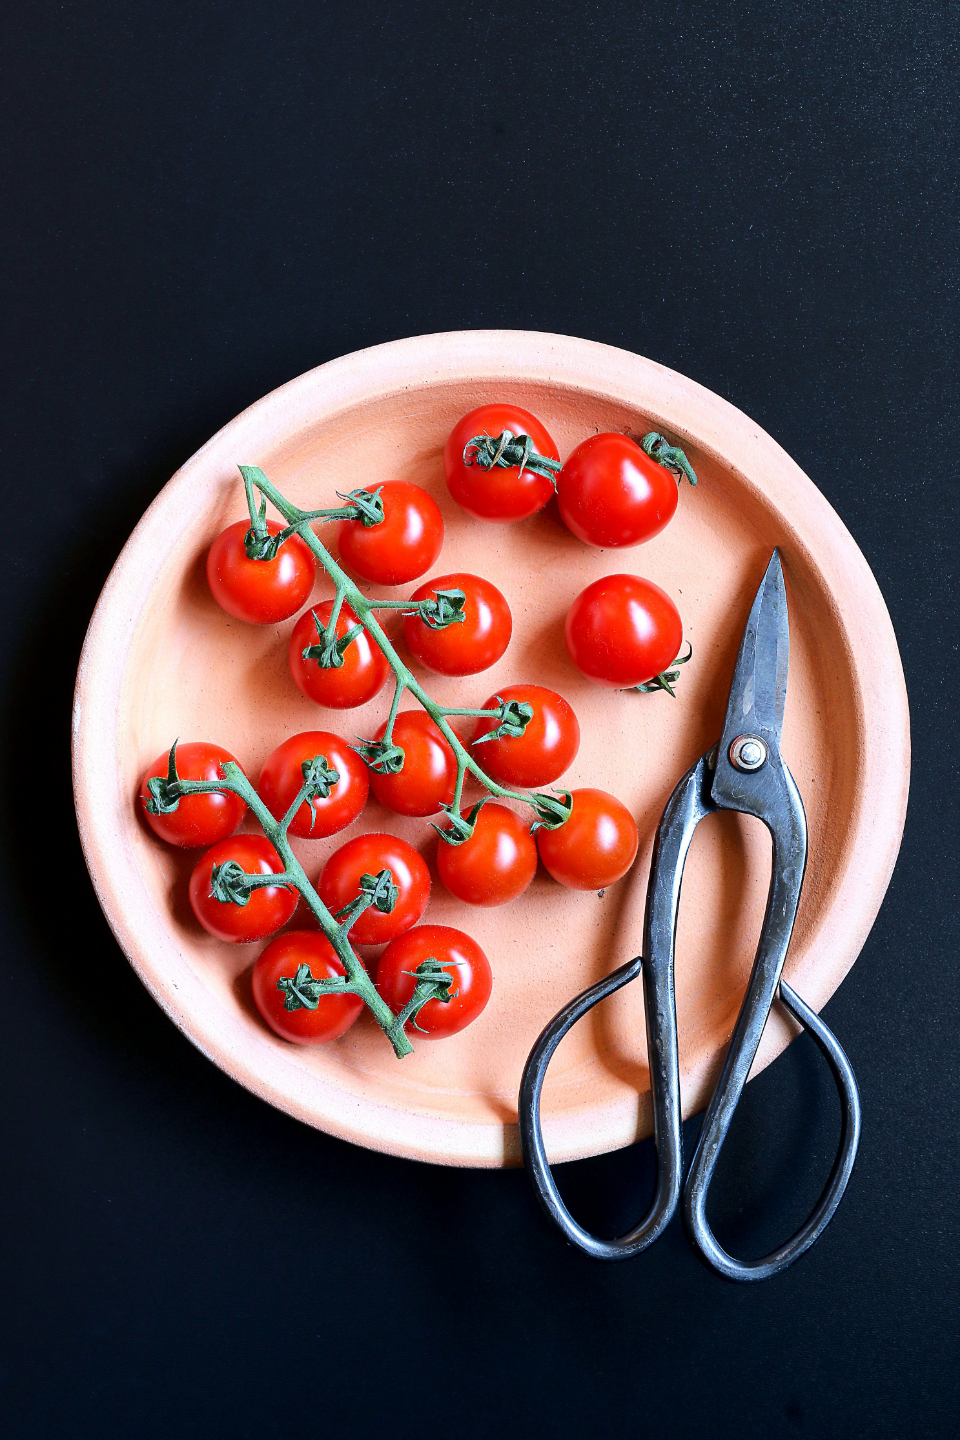 plate flat lay tomatoes cherry tomatoes fruit vegetable food fresh cooking ingredients kitchen healthy garden organic chef gourmet table dinner dish salad red plant raw ripe